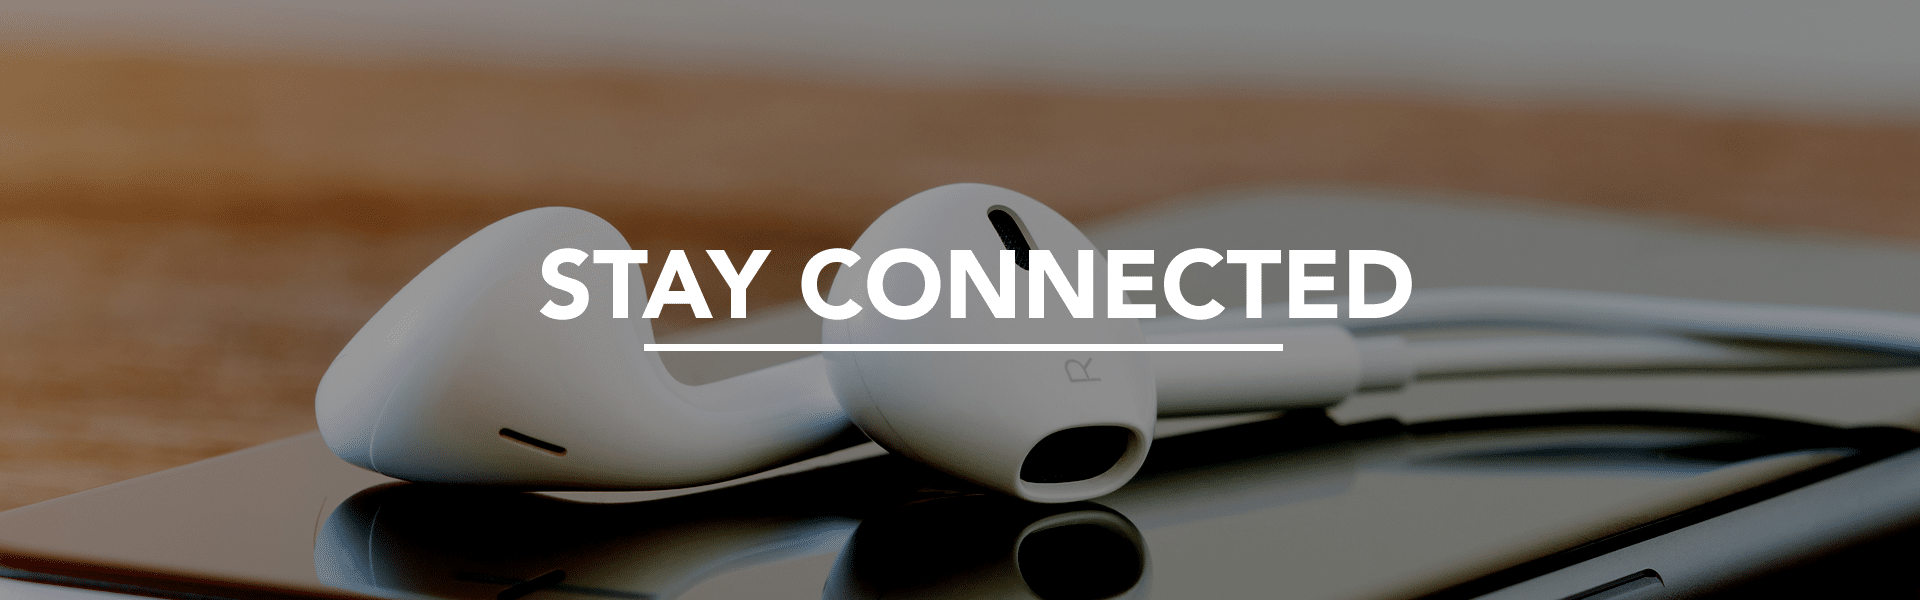 Stay Connected at The Church at LifePark